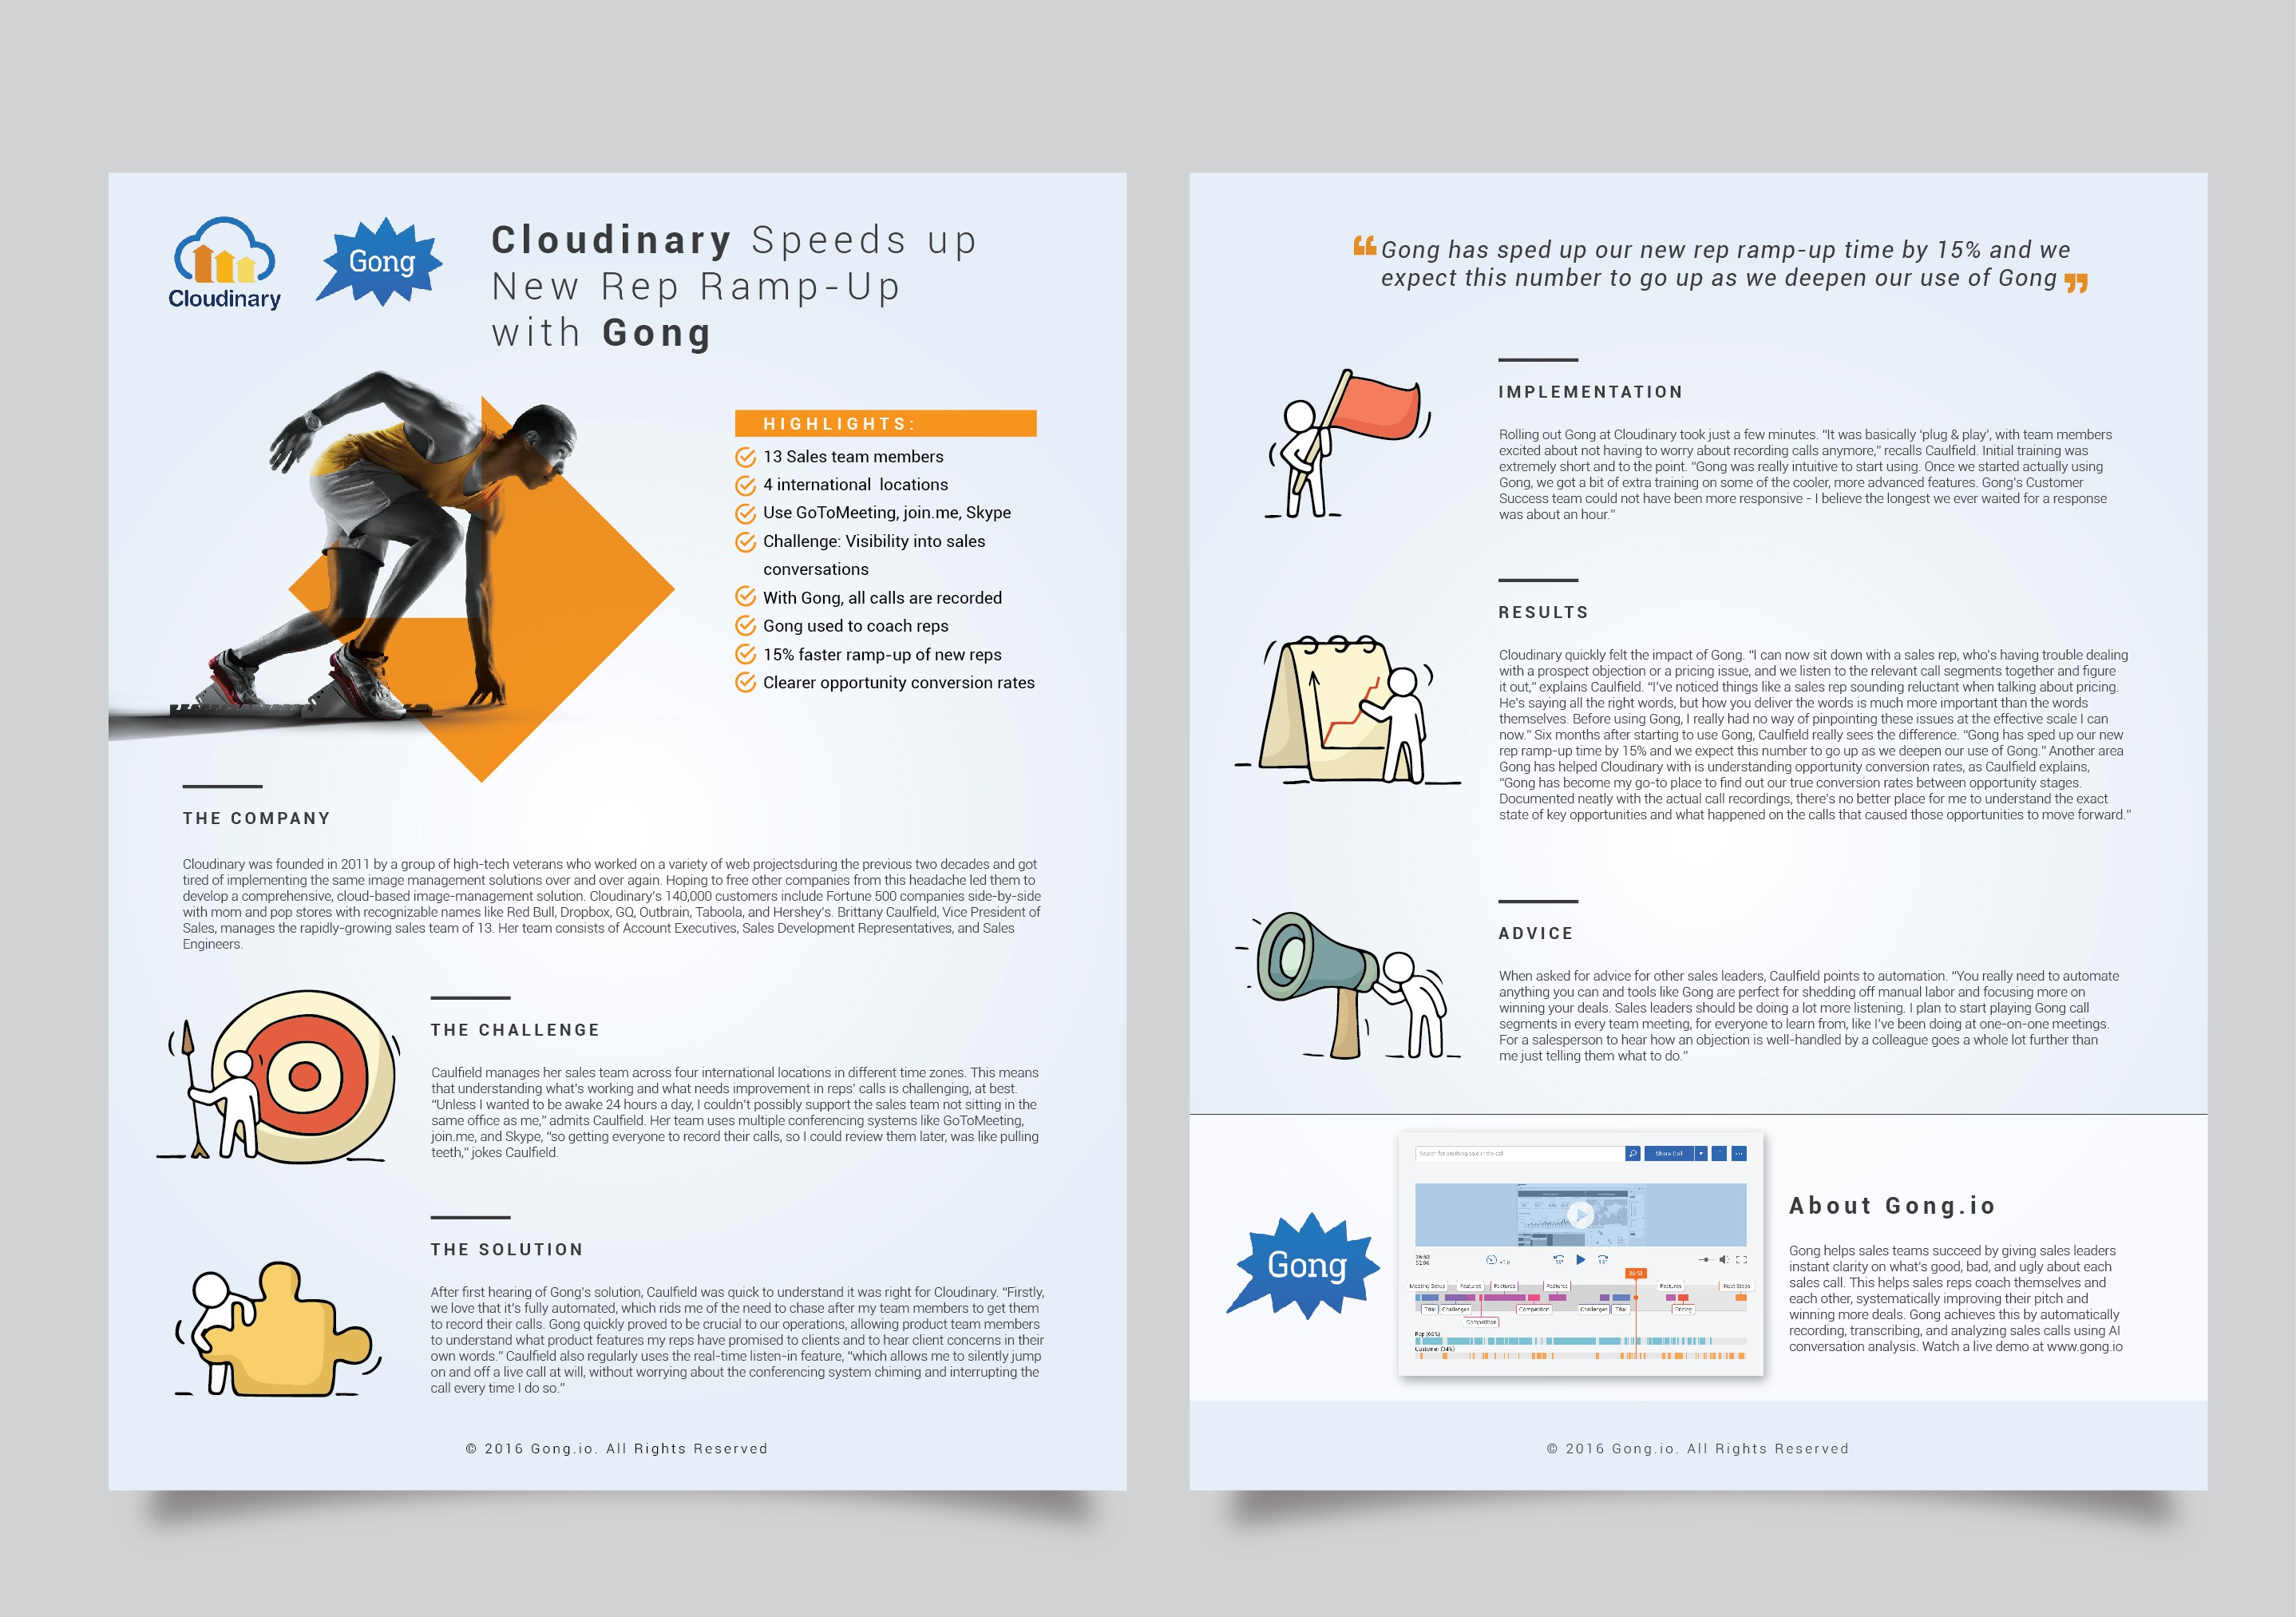 Ultra modern, clean & contemporary 2 page customer case ctudy template for a emerging tech start-up